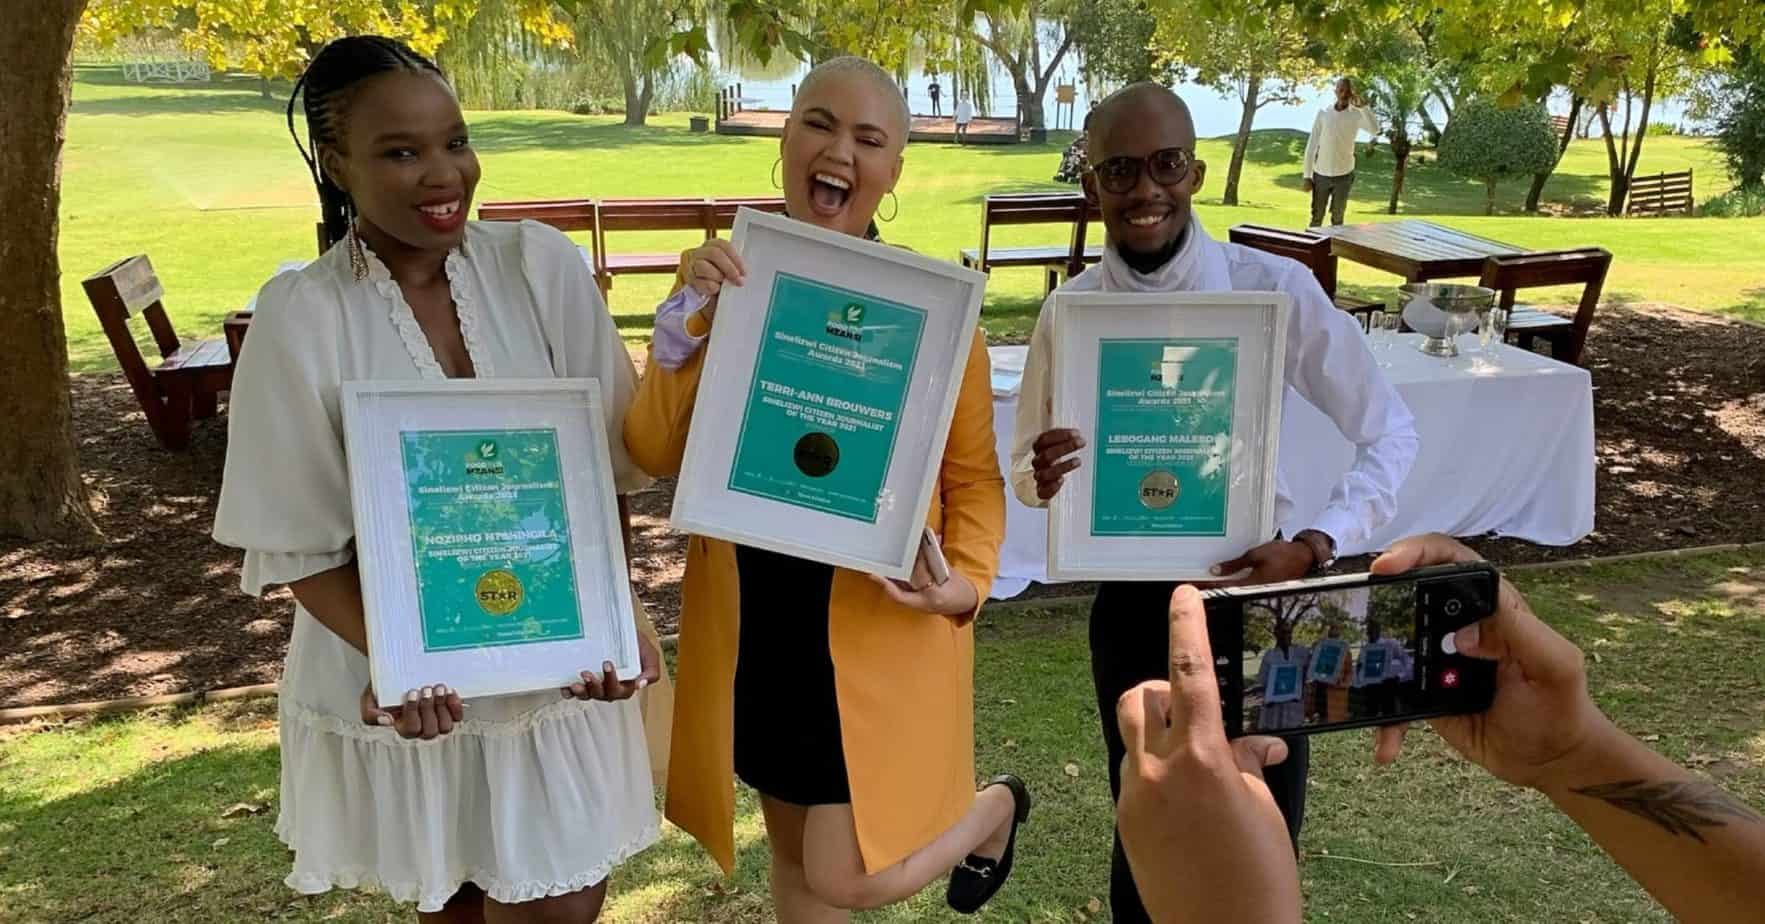 South Africa, meet the top three performers in the Sinelizwi Citizen Journalist of the Year awards. From the left are Nozipho Ntshingila (first runner-up), Gugulethu Mahlangu (winner) and Lebogang Malebo (second runner-up). Photo: Food For Mzansi